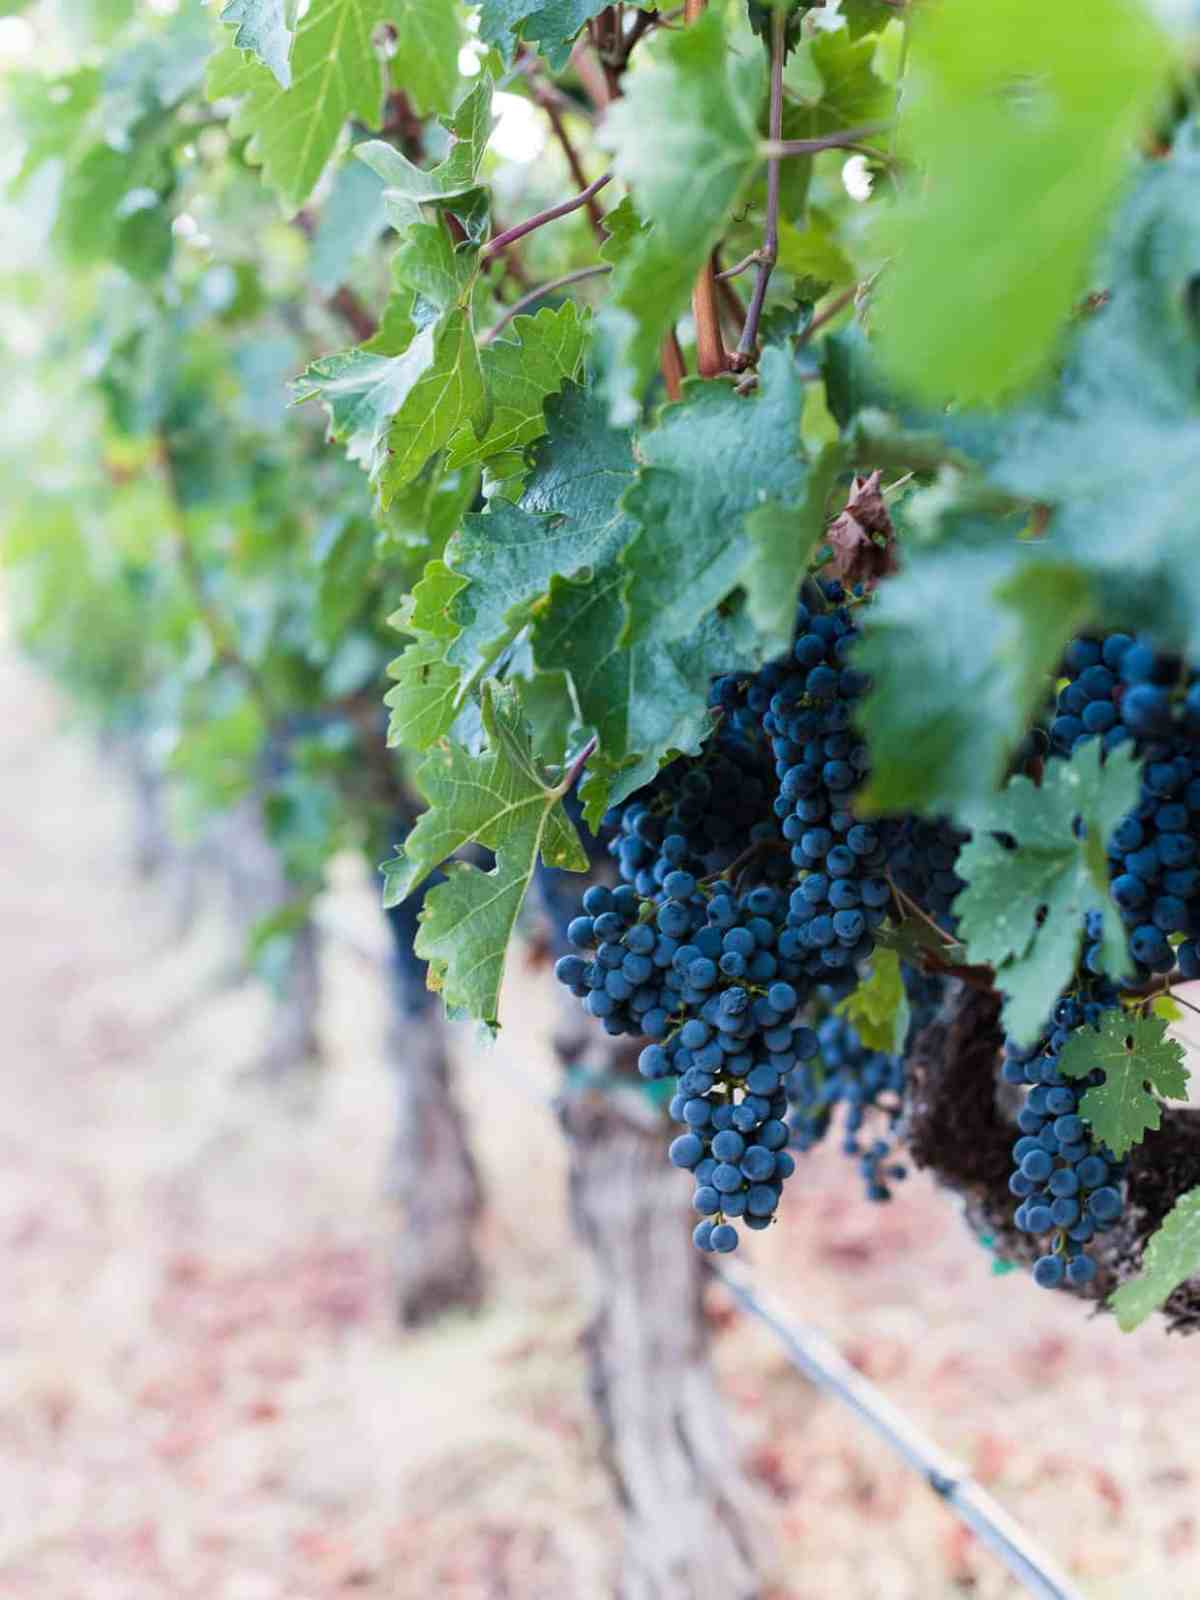 Grapes on the vine at Kelly Fleming Winery.